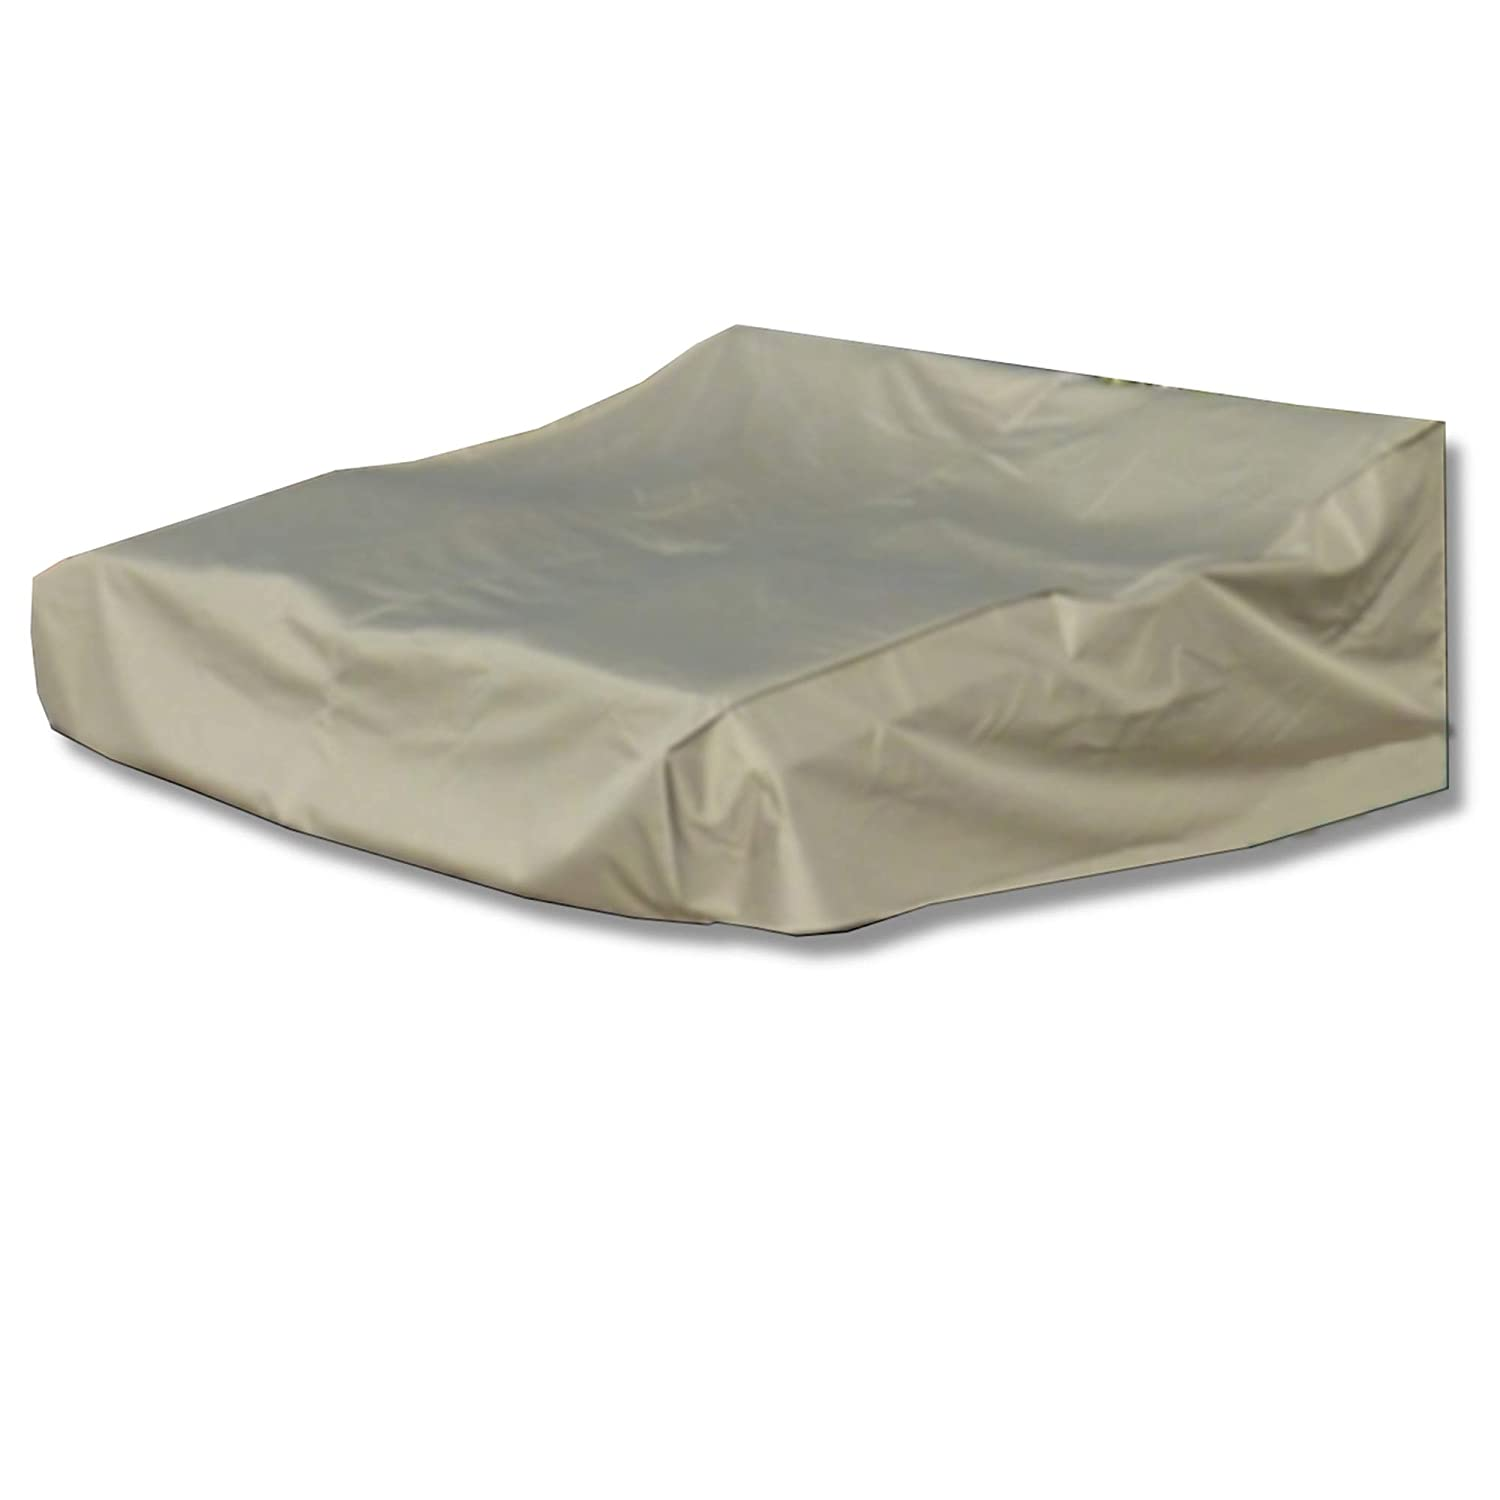 Amazon com sunmart double chaise cover premium tight weave all weather protection for your patio furniture up to 90l x 75w x 30h back taupe